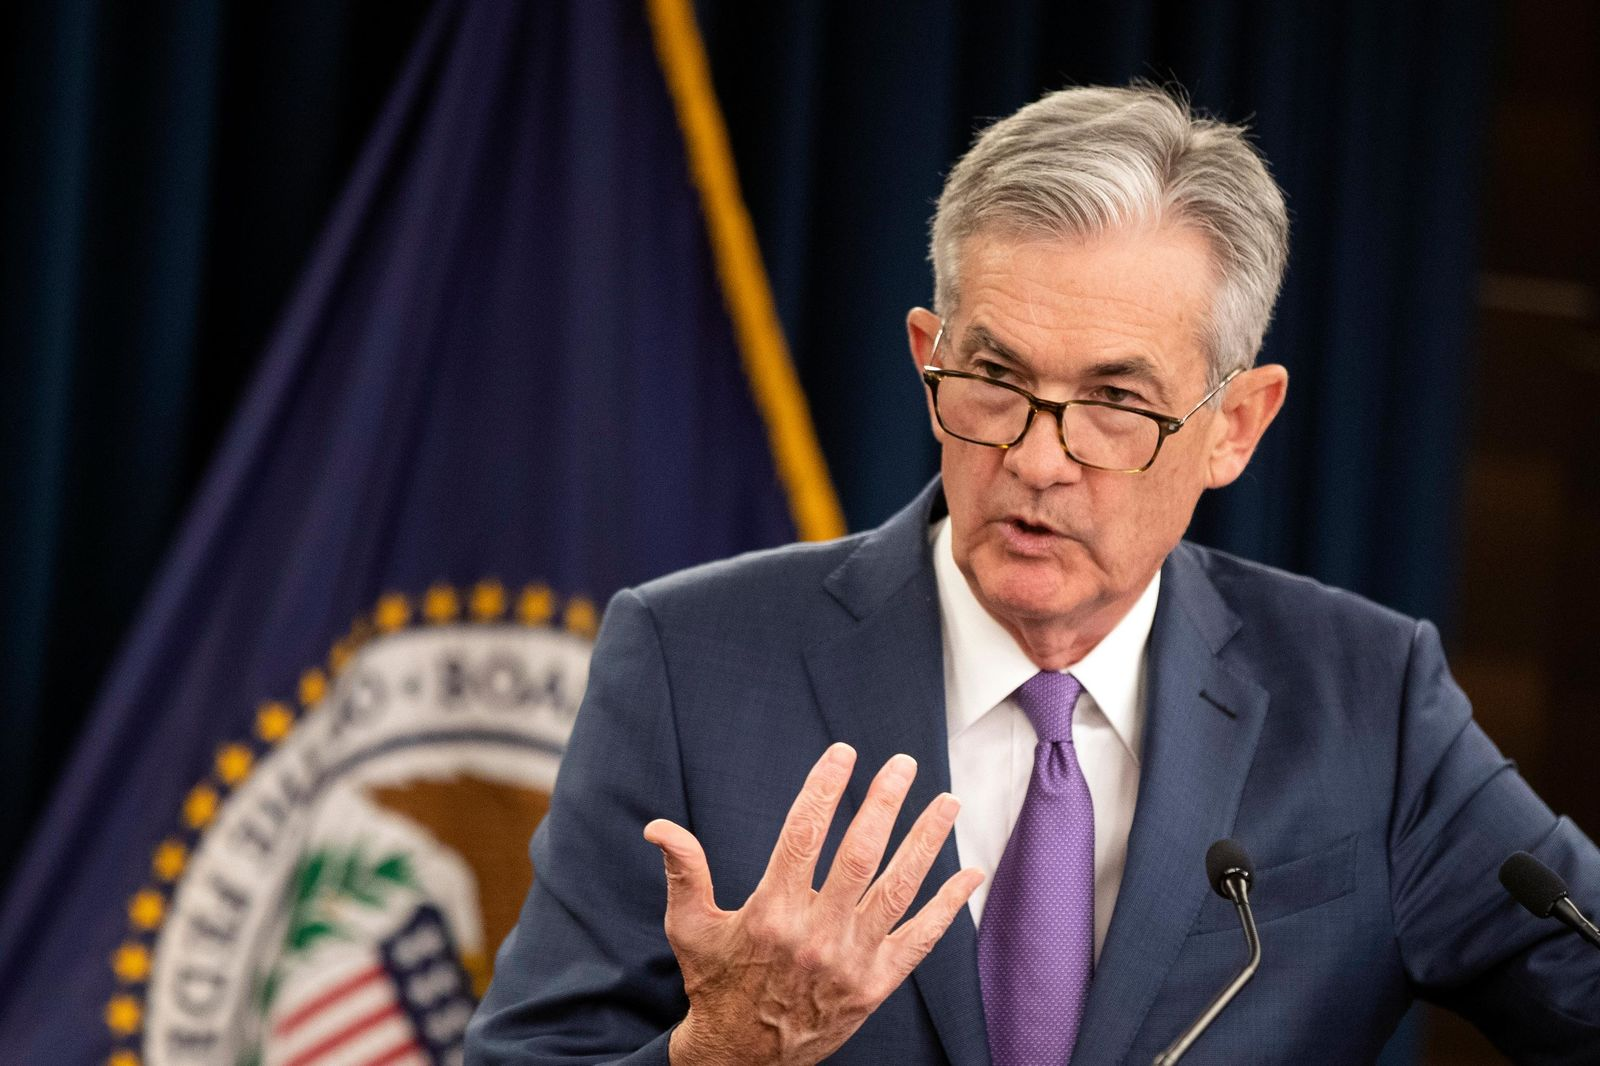 Federal Reserve Chairman Jerome Powell{ } (AP Photo/Manuel Balce Ceneta, File)